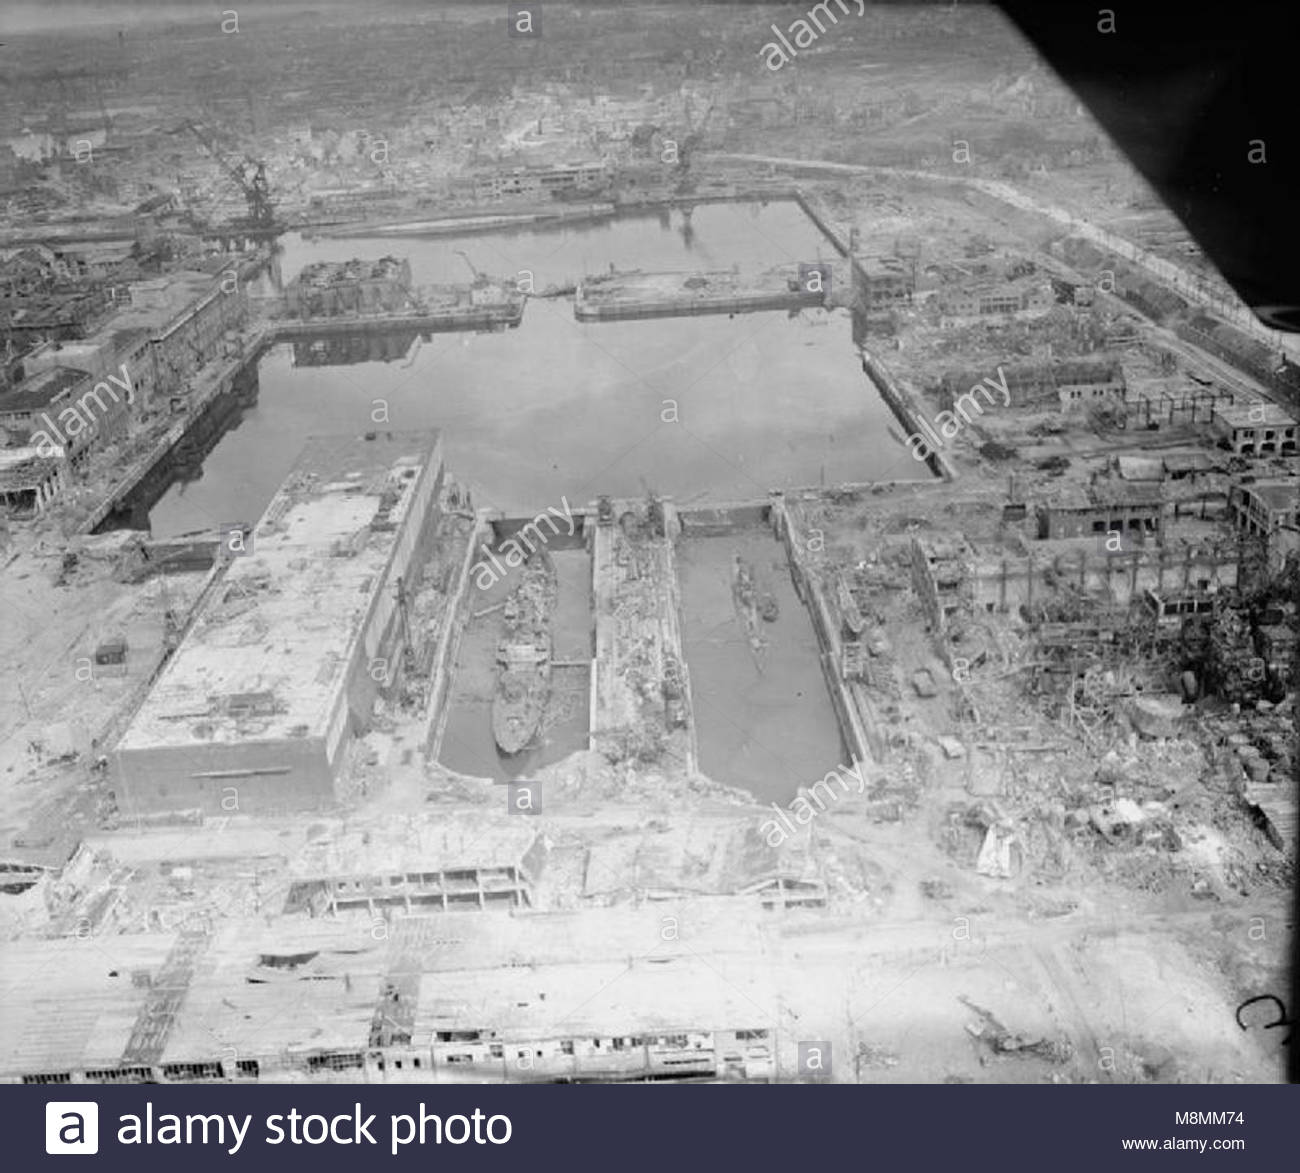 Germany Under Allied Occupation Low Level Oblique Aerial Photograph Of The Devastation Caused To German Naval Docks At Kiel